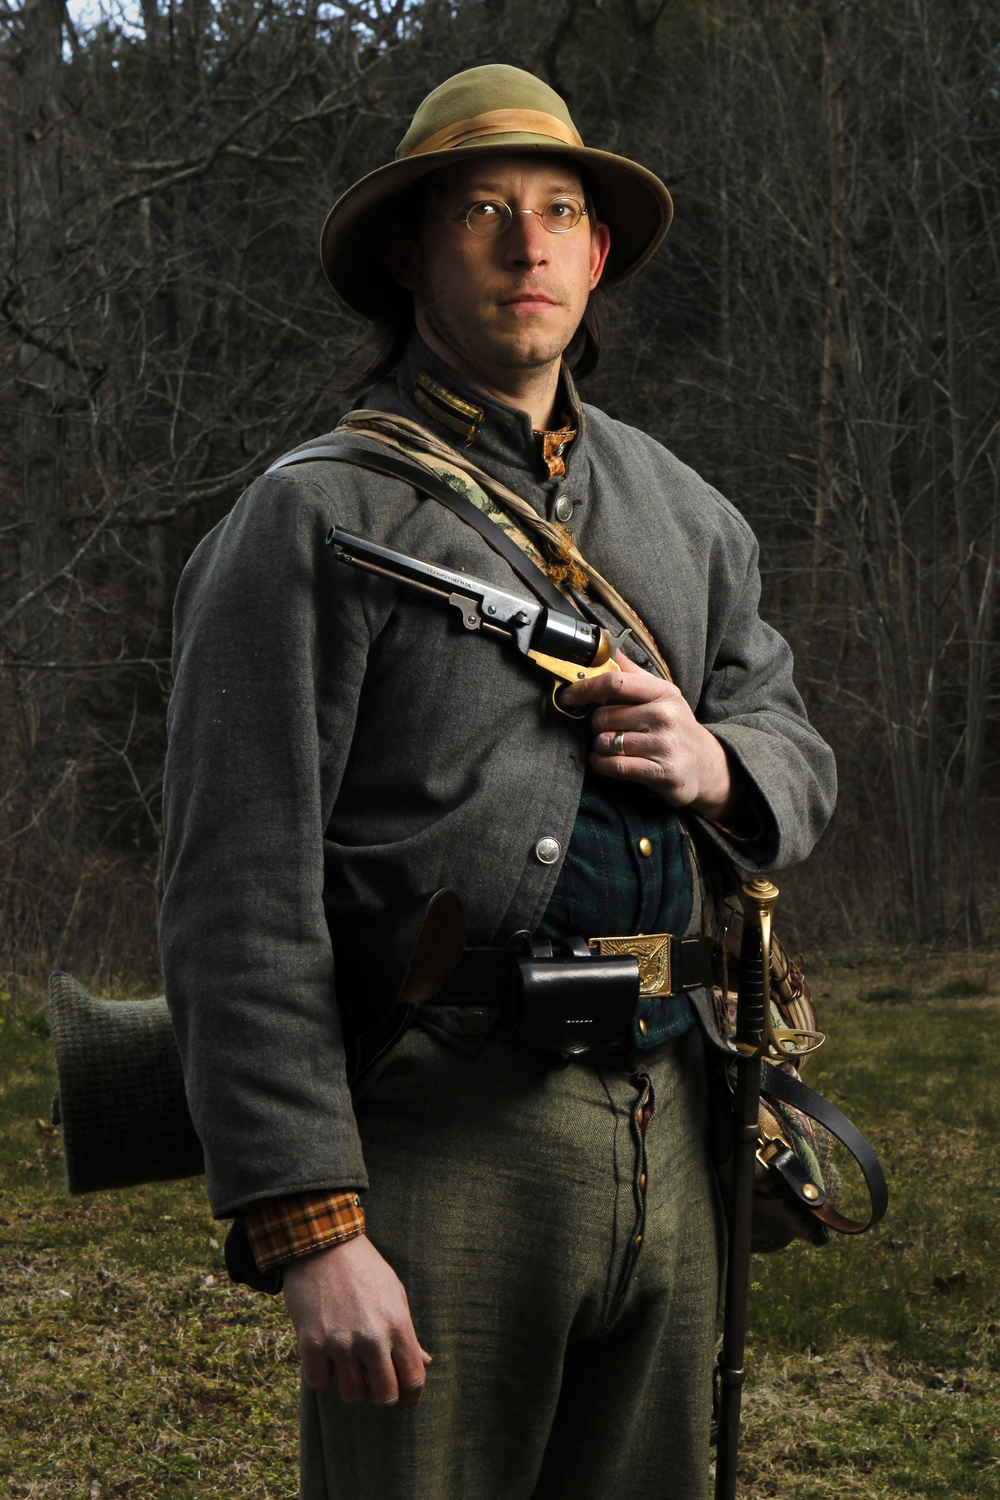 """Raymond Douglas Camper III, 37, of Roanoke, is photographed with a Spiller and Burr model of an 1851 Colt Navy Arms. """"We do Civil War reenactment, me and my reenactment unit,"""" Camper said. """"I don't normally live-fire the weaponry.""""   See full project here."""